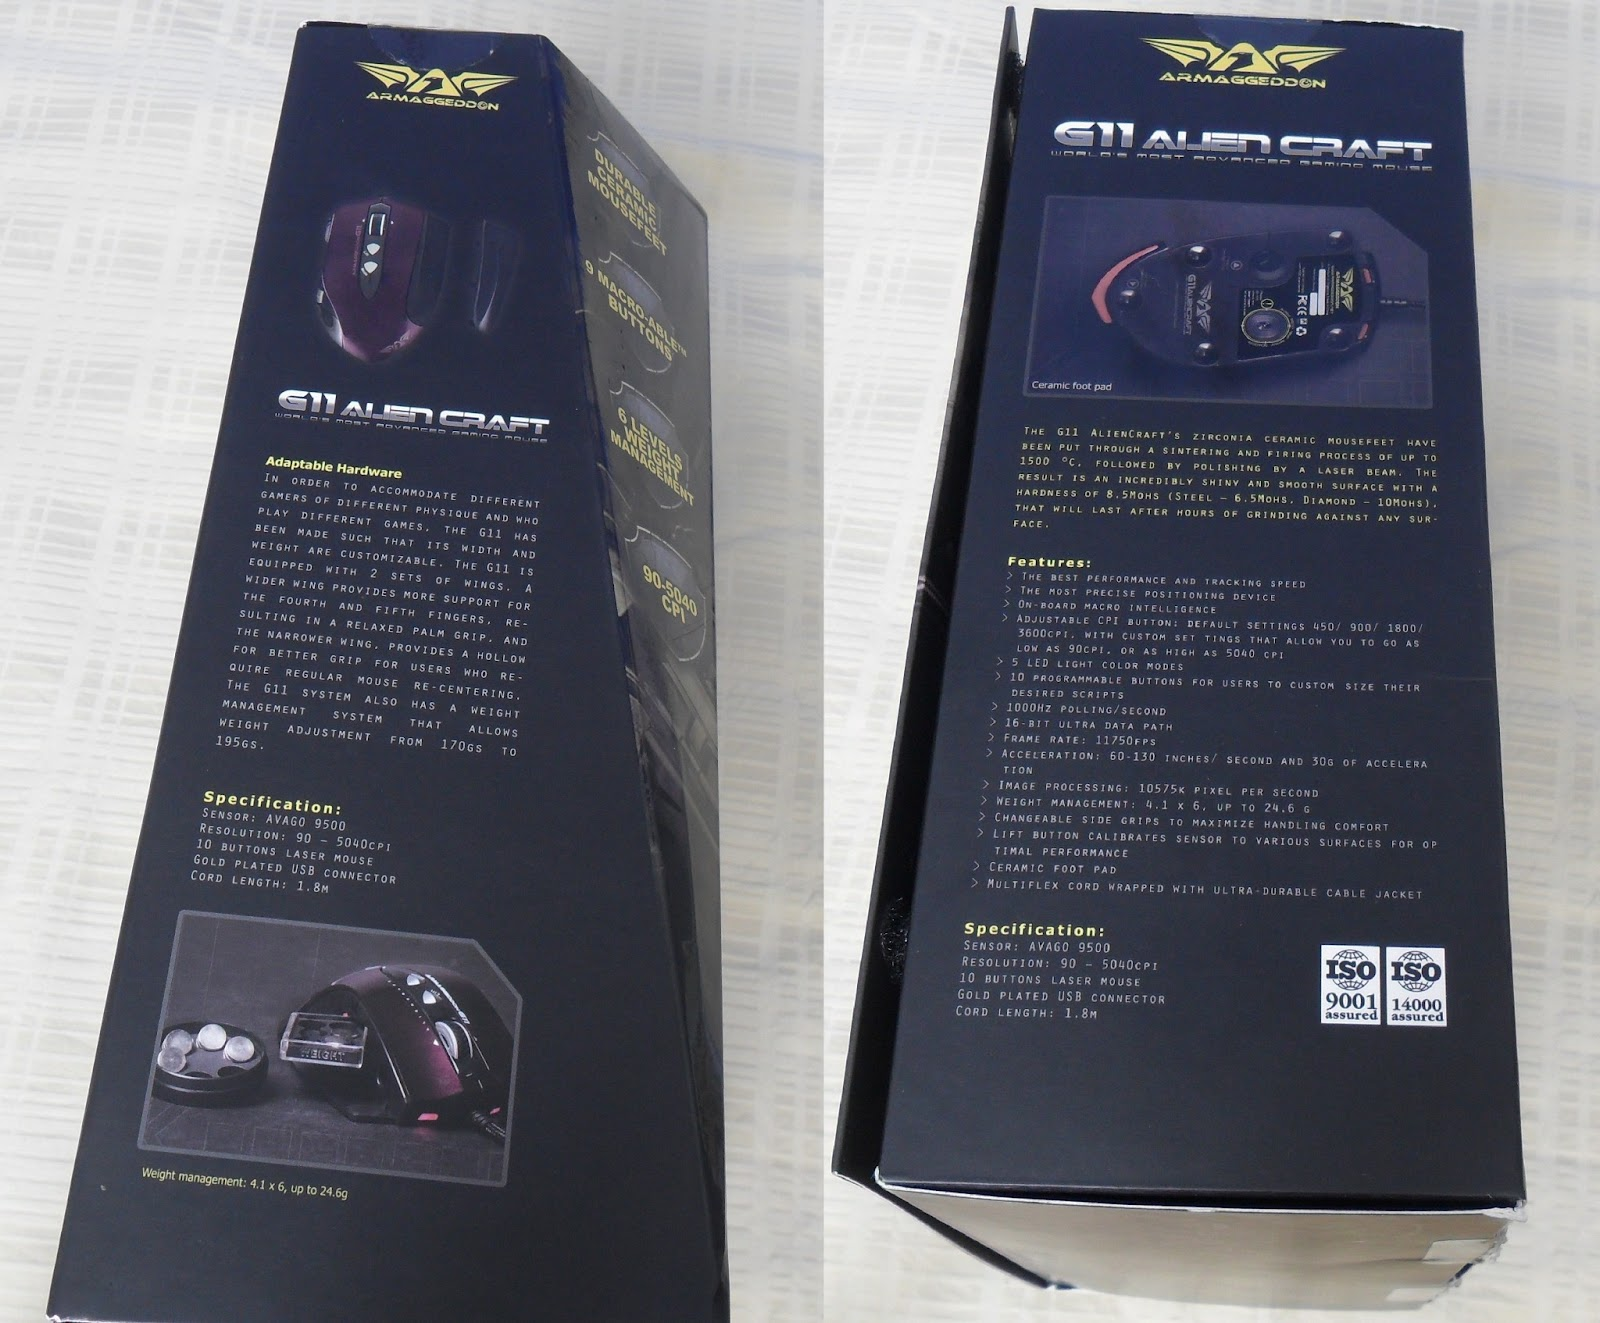 Unboxing & Review: Armaggeddon G11 Alien Craft Gaming Mouse 58